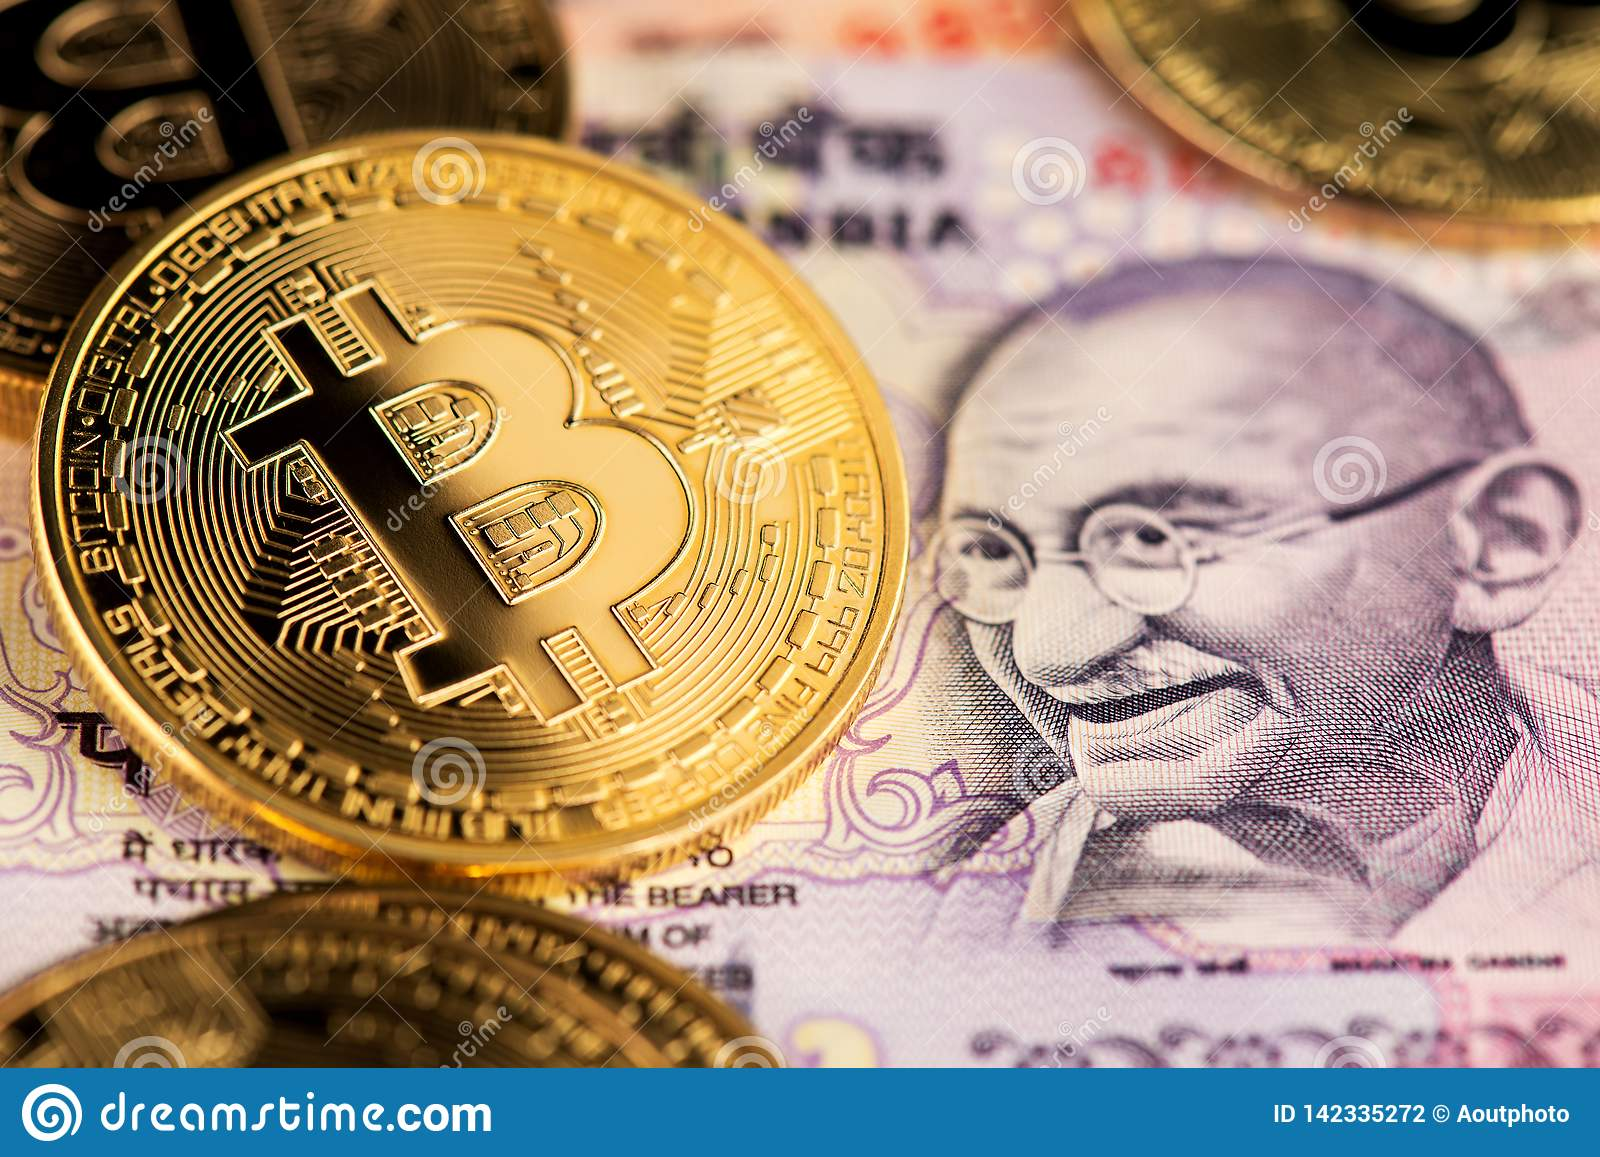 what is india coin cryptocurrency